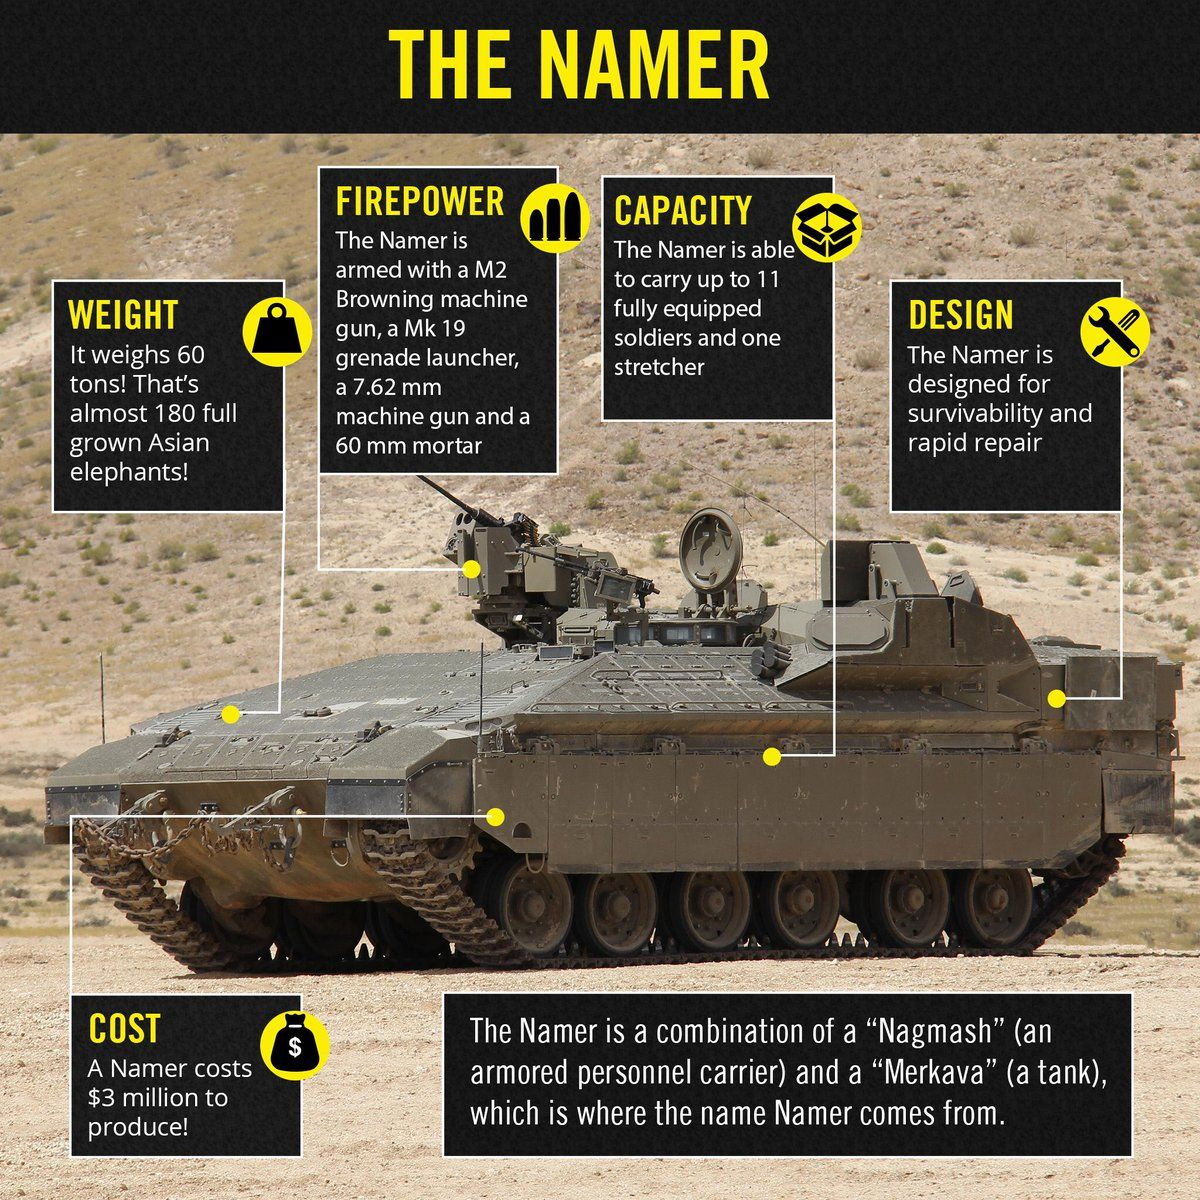 Idf Idfspokesperson Twitter With Images Army Tanks